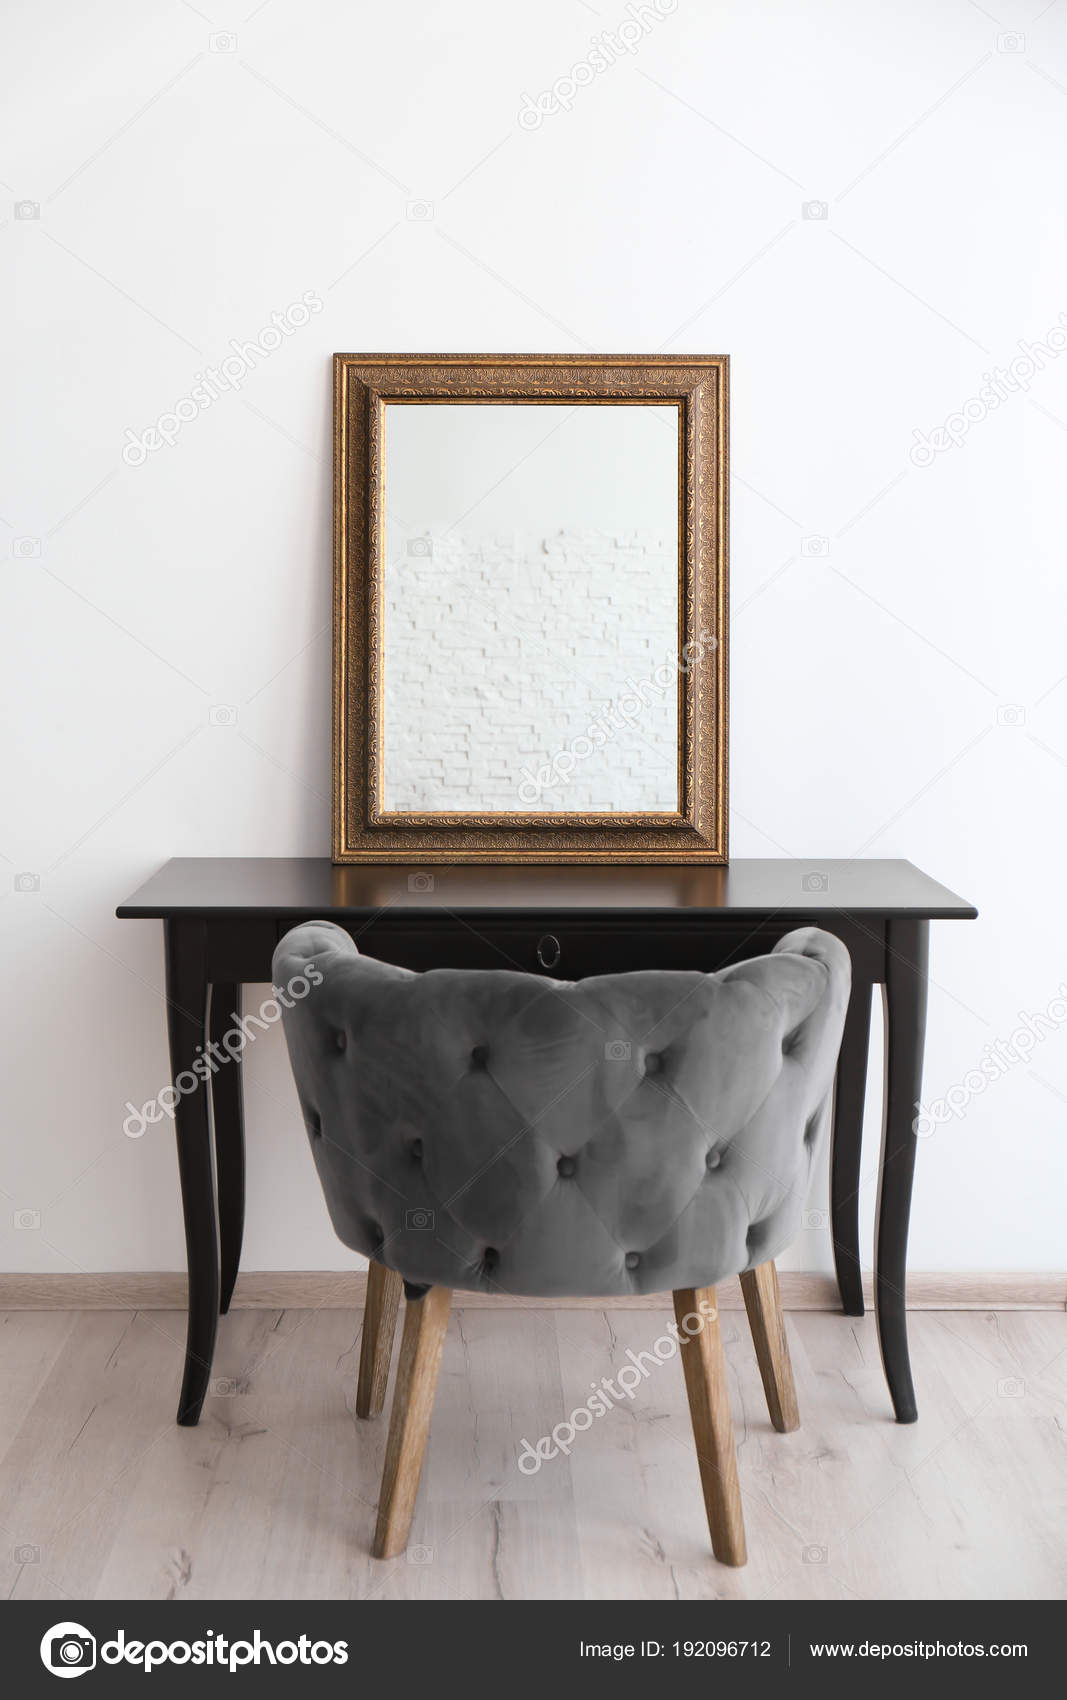 Modern Wood Dressing Table Modern Makeup Room Interior With Dressing Table And Mirror Stock Photo C Liudmilachernetska Gmail Com 192096712